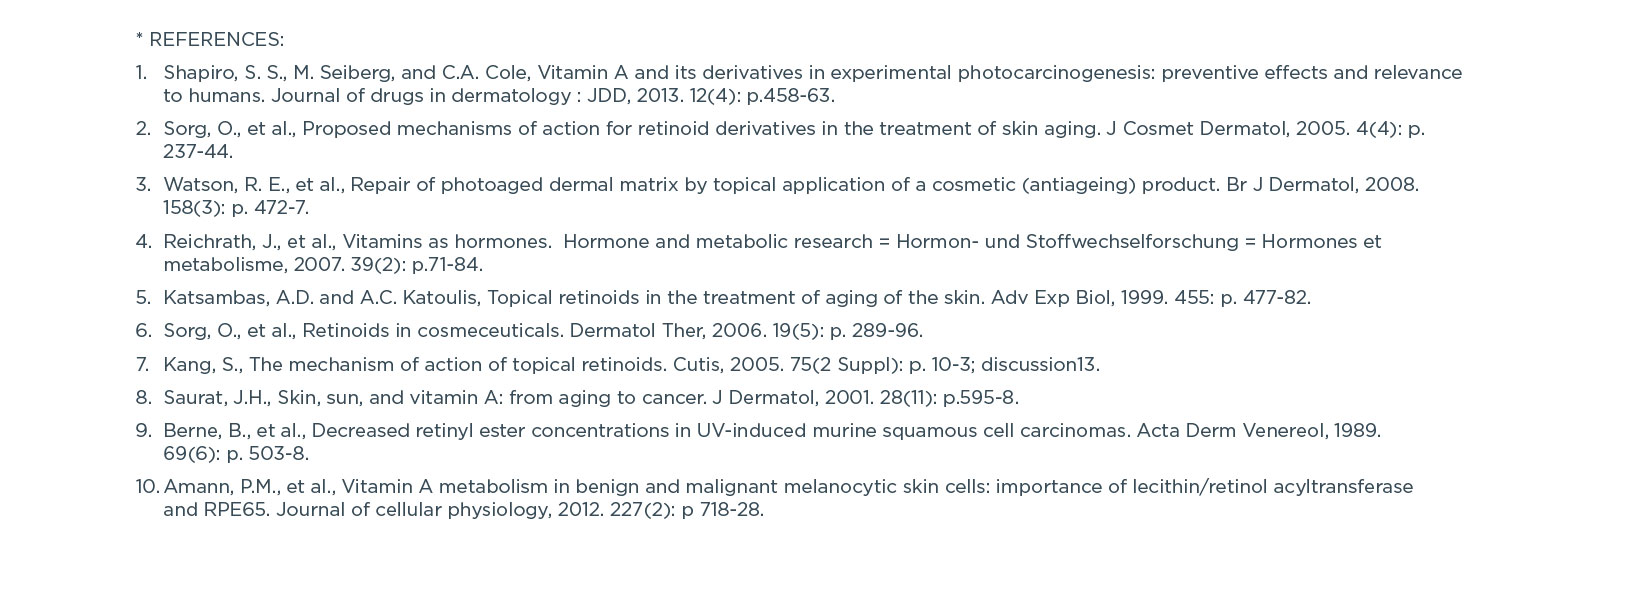 Vitamin-A References | Environ Skin Care